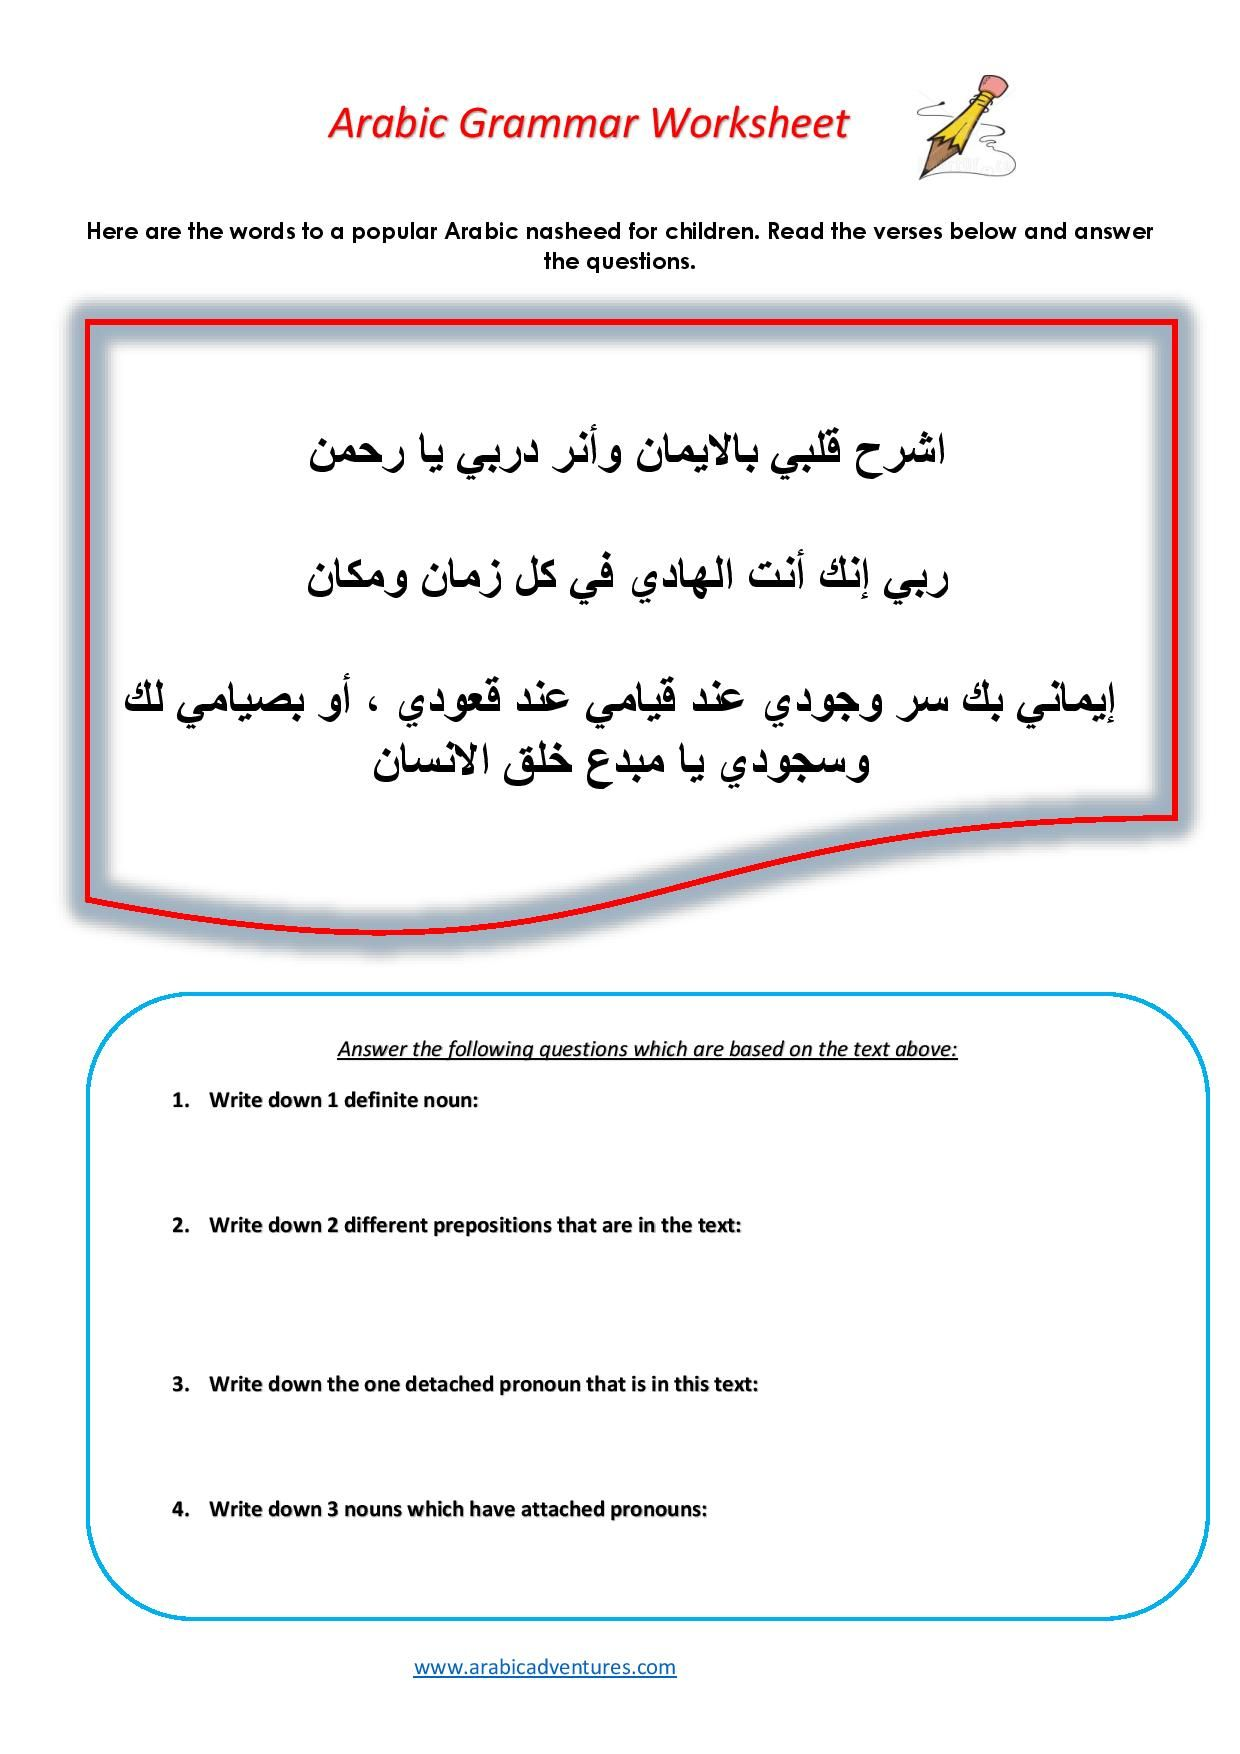 Arabic Grammar Review Worksheet Using A Popular Nasheed